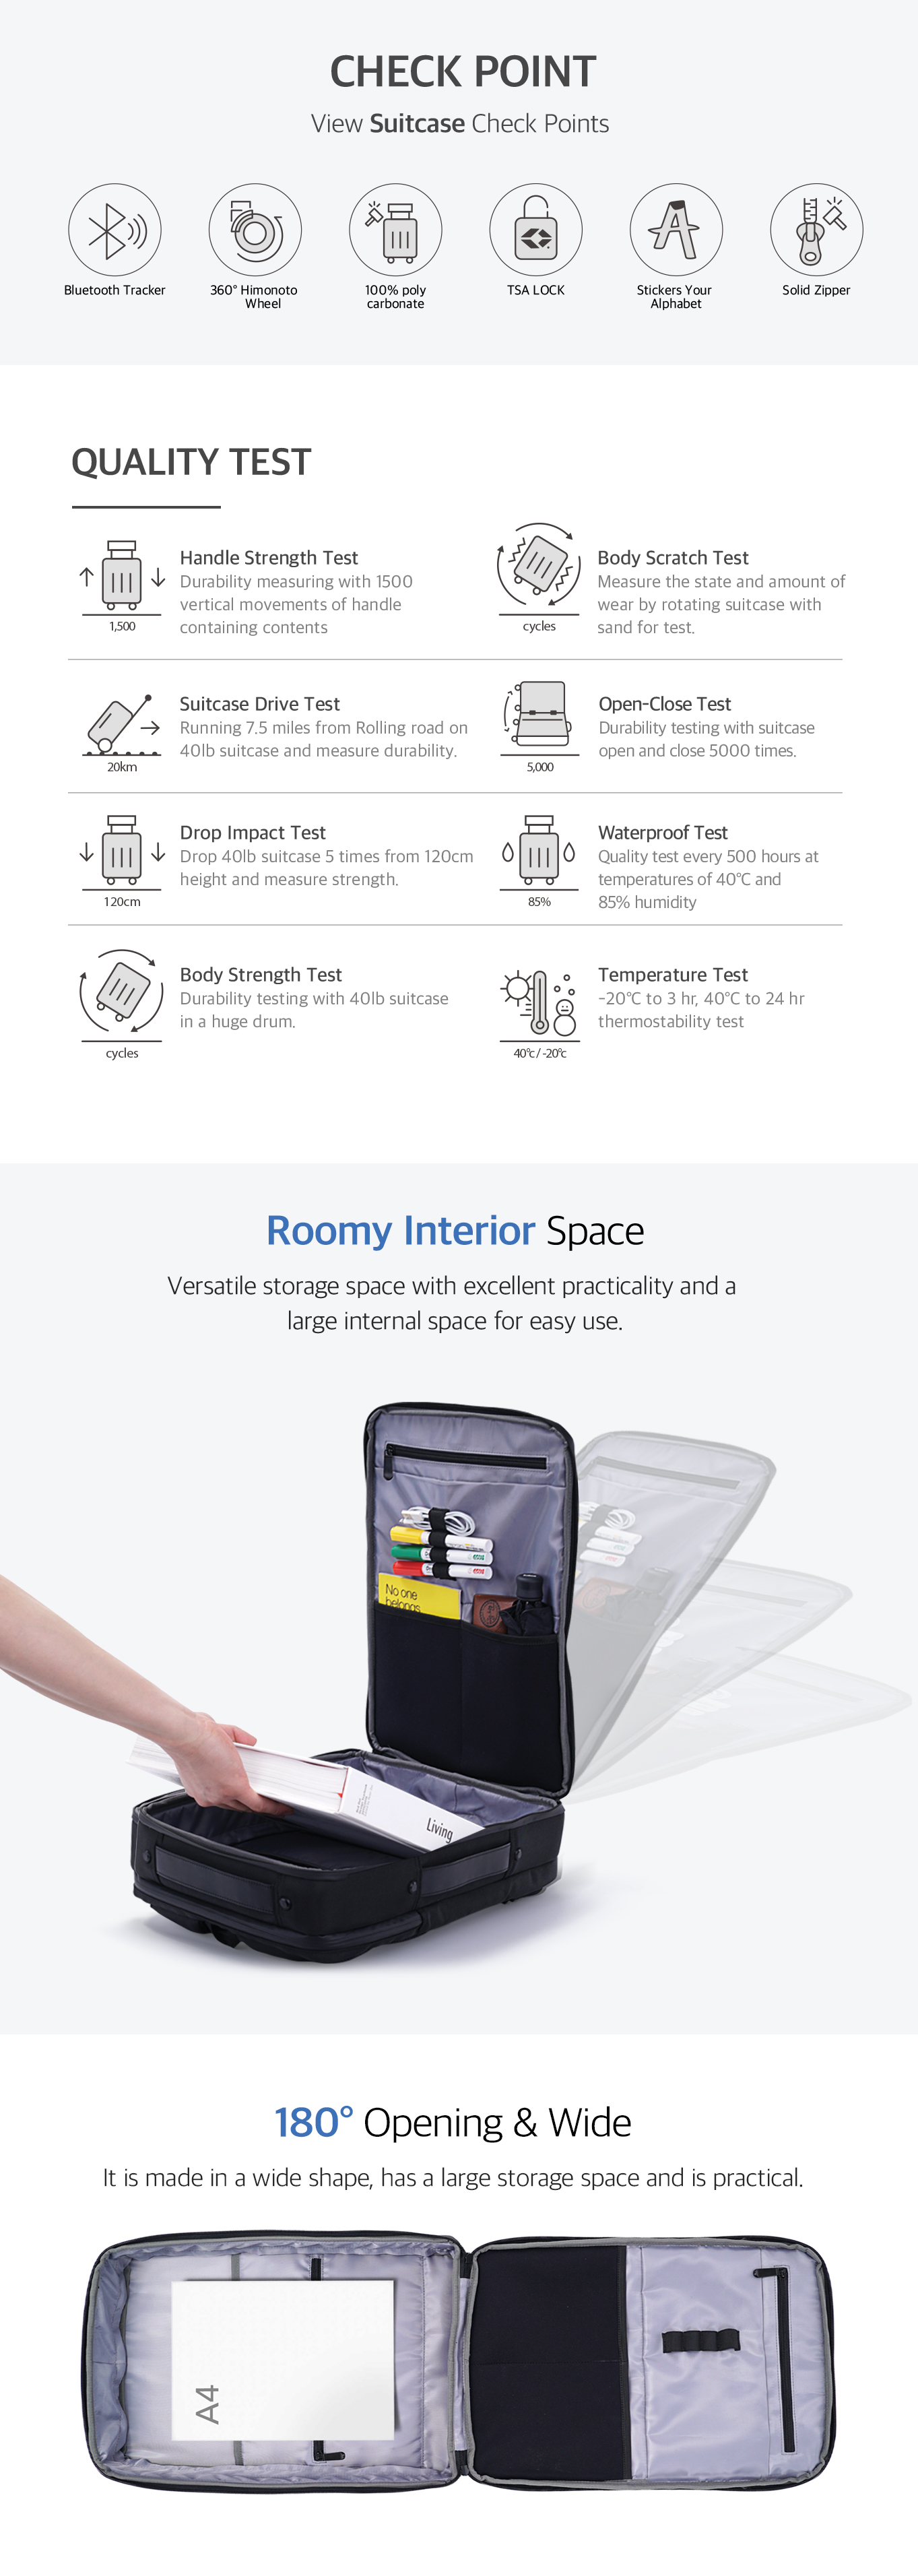 SHAPL Suitcase & Backpack 03